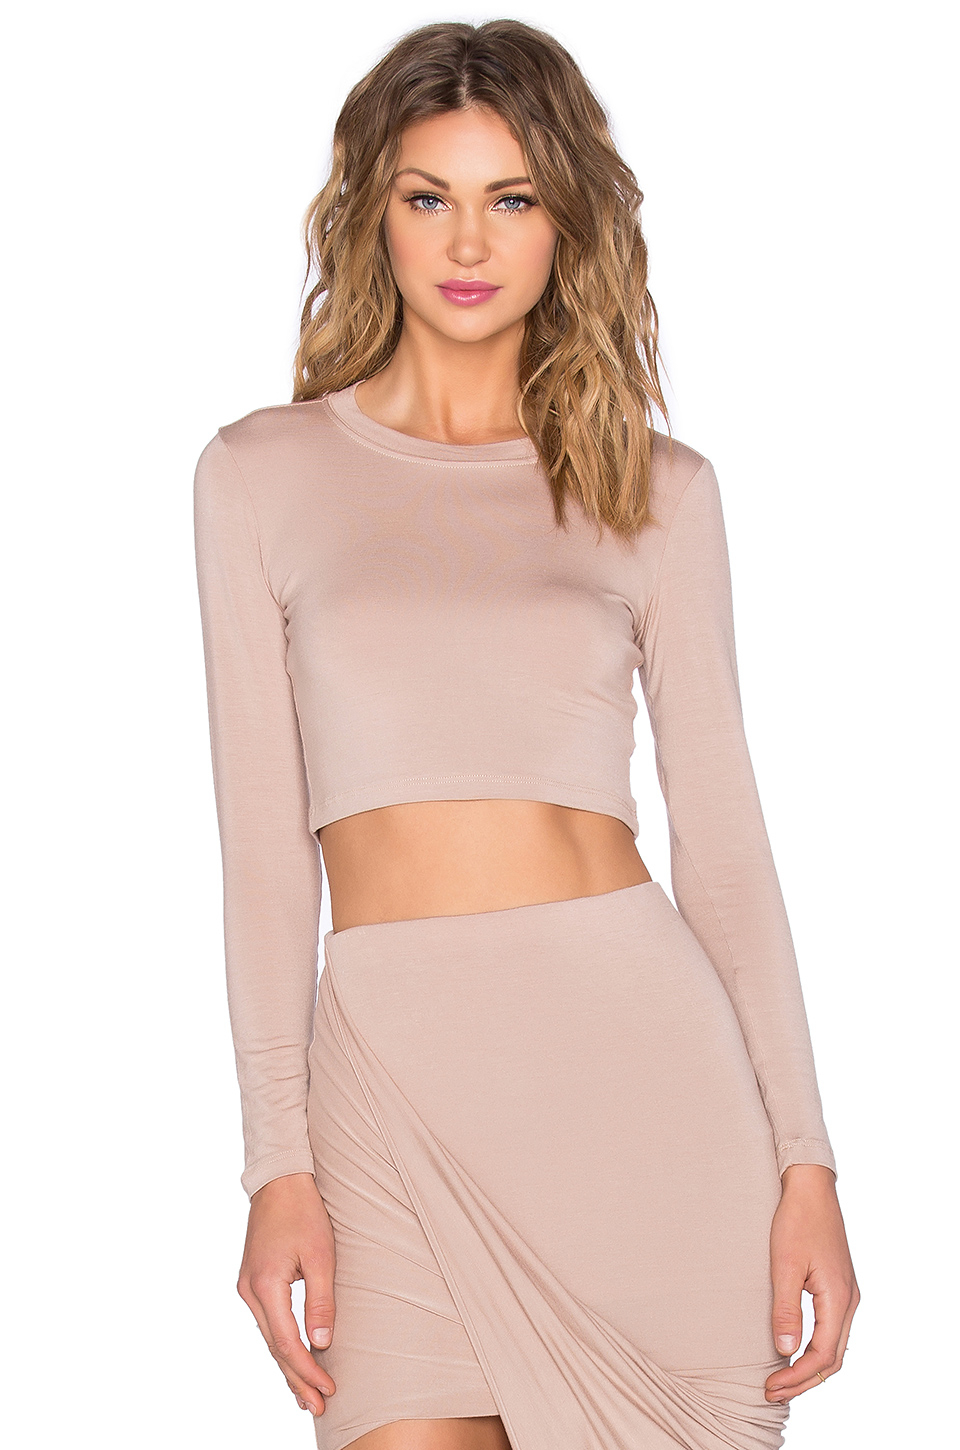 bf682531922 Blq Basiq X Revolve Exclusive Long Sleeve Crop Top in Natural - Lyst